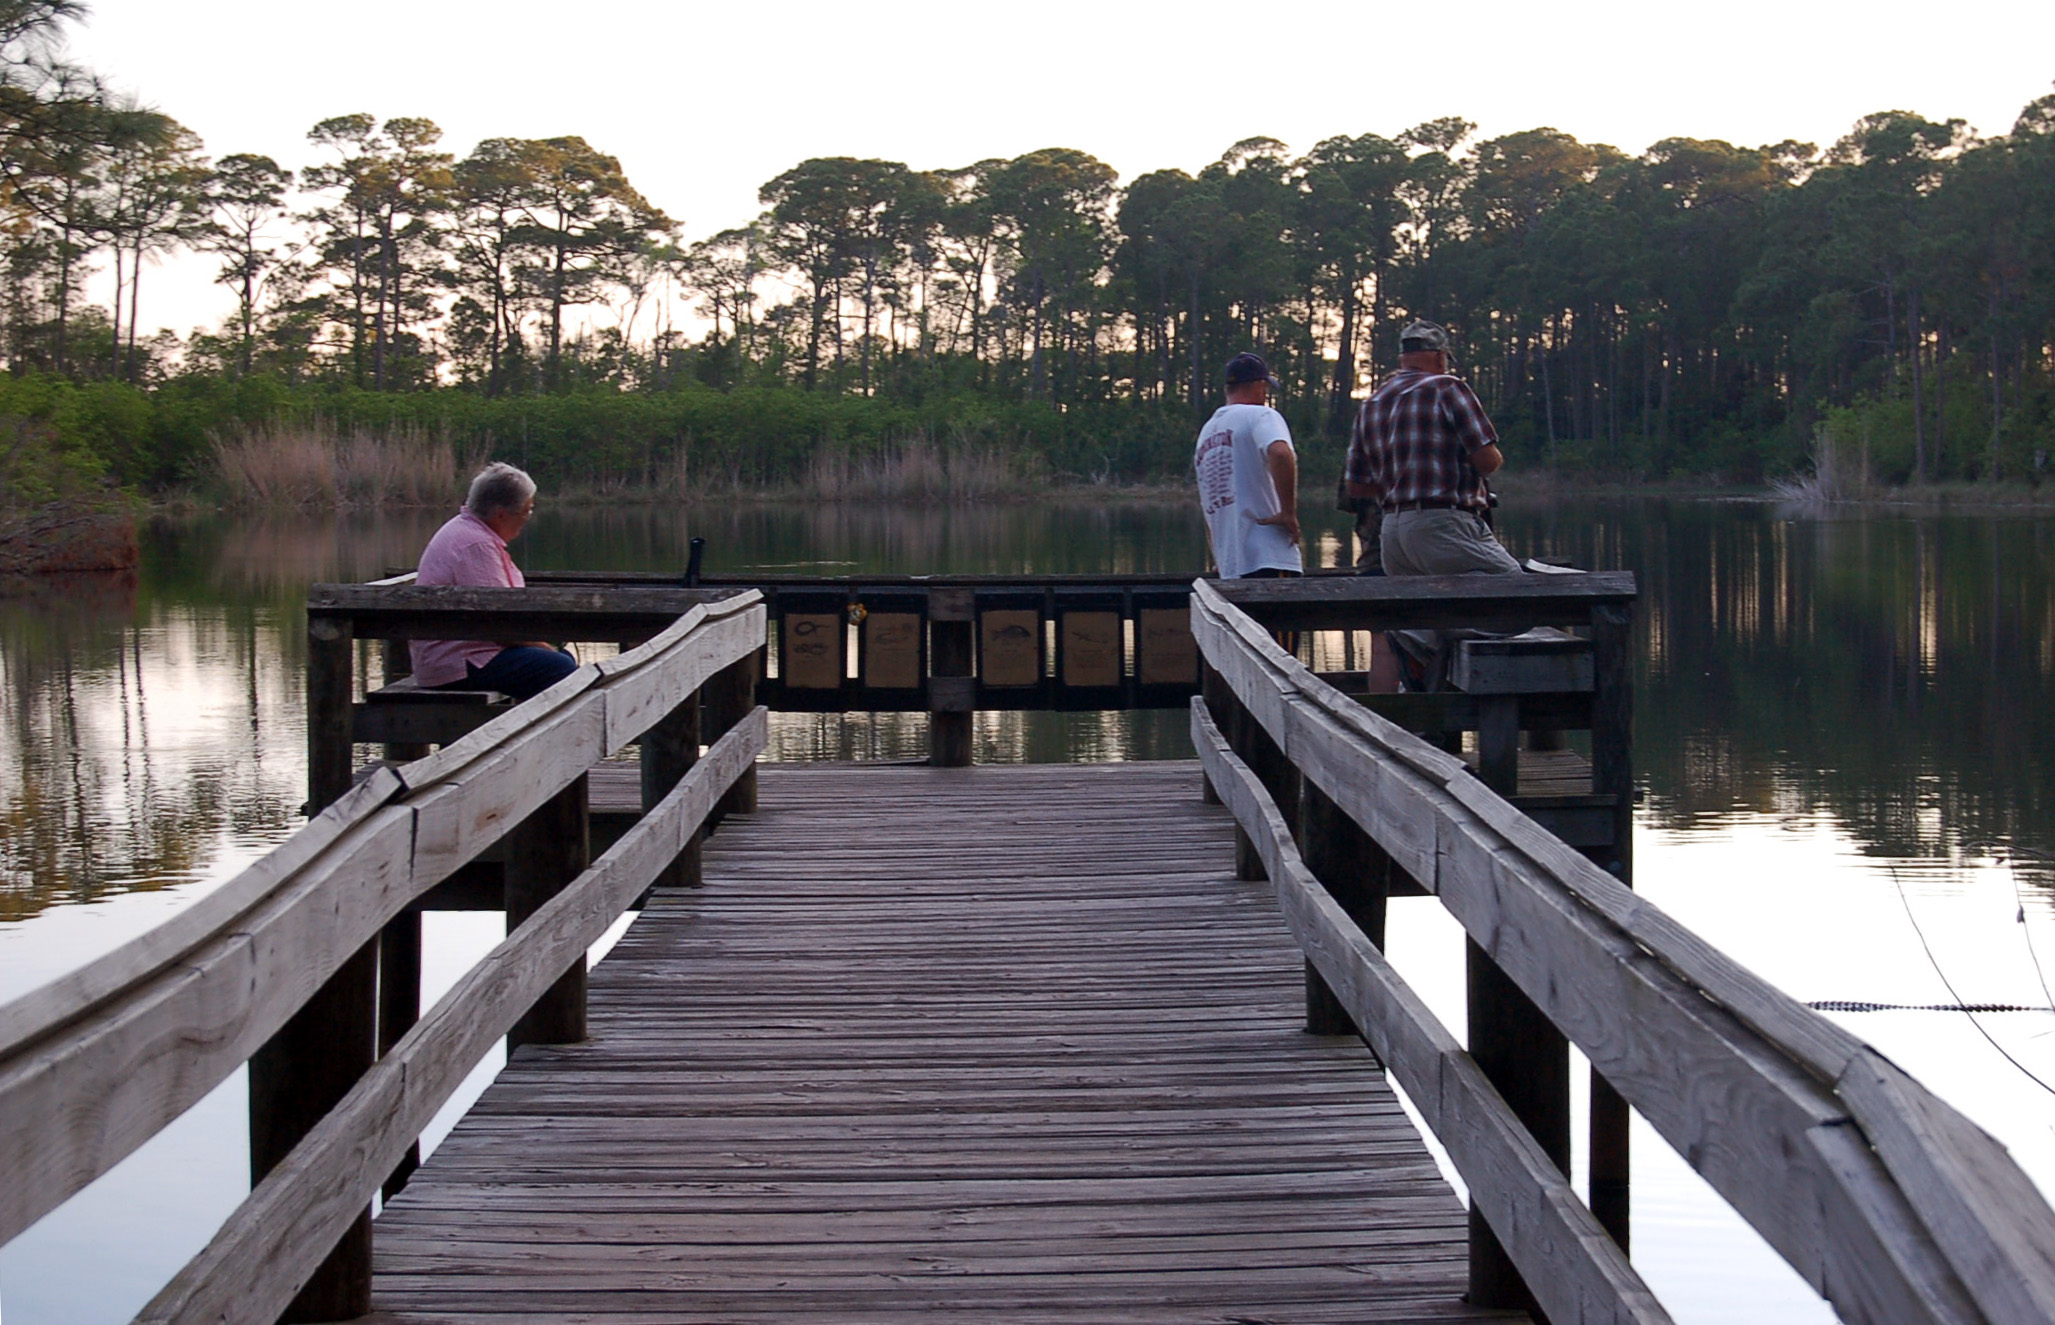 dauphin island black single men Dauphin island, al has a population either black or non-black, from the dartmouth atlas 120 men graduated from institutions in prichard city.